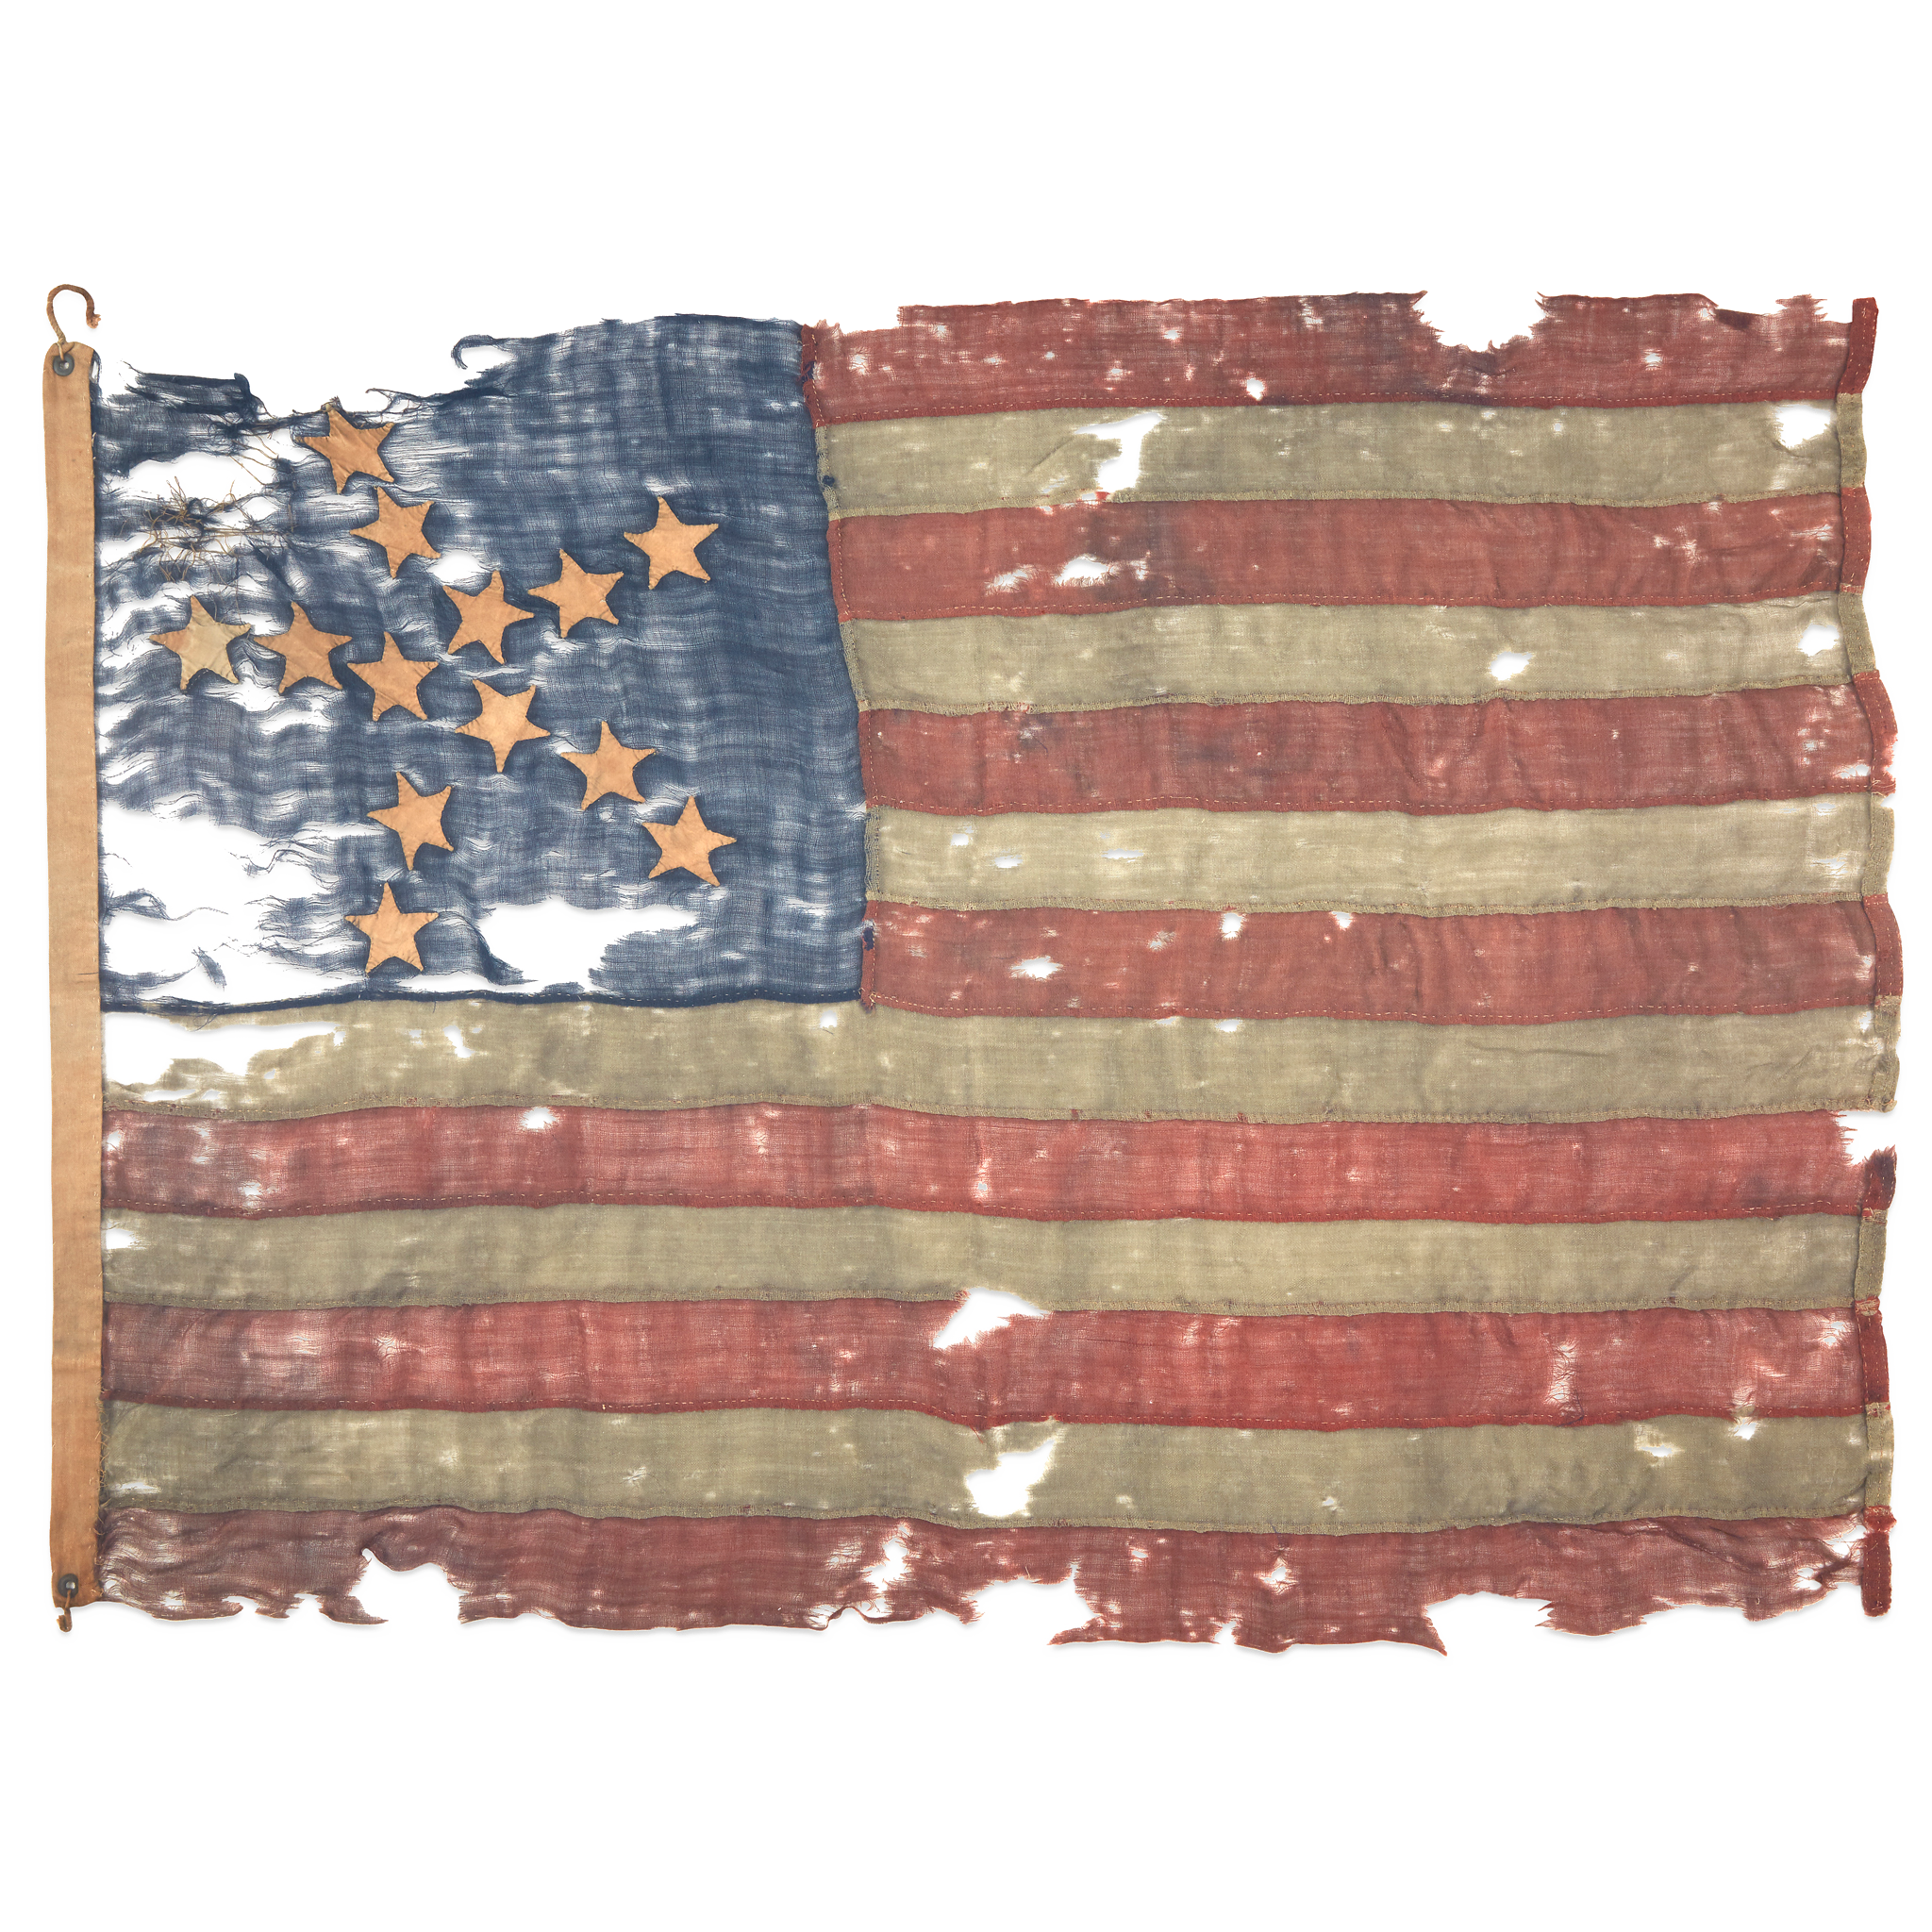 Lot 3 | A 13-Star 'Great Star' pattern American Flag, late 18th/early 19th century, $15,000-25,000